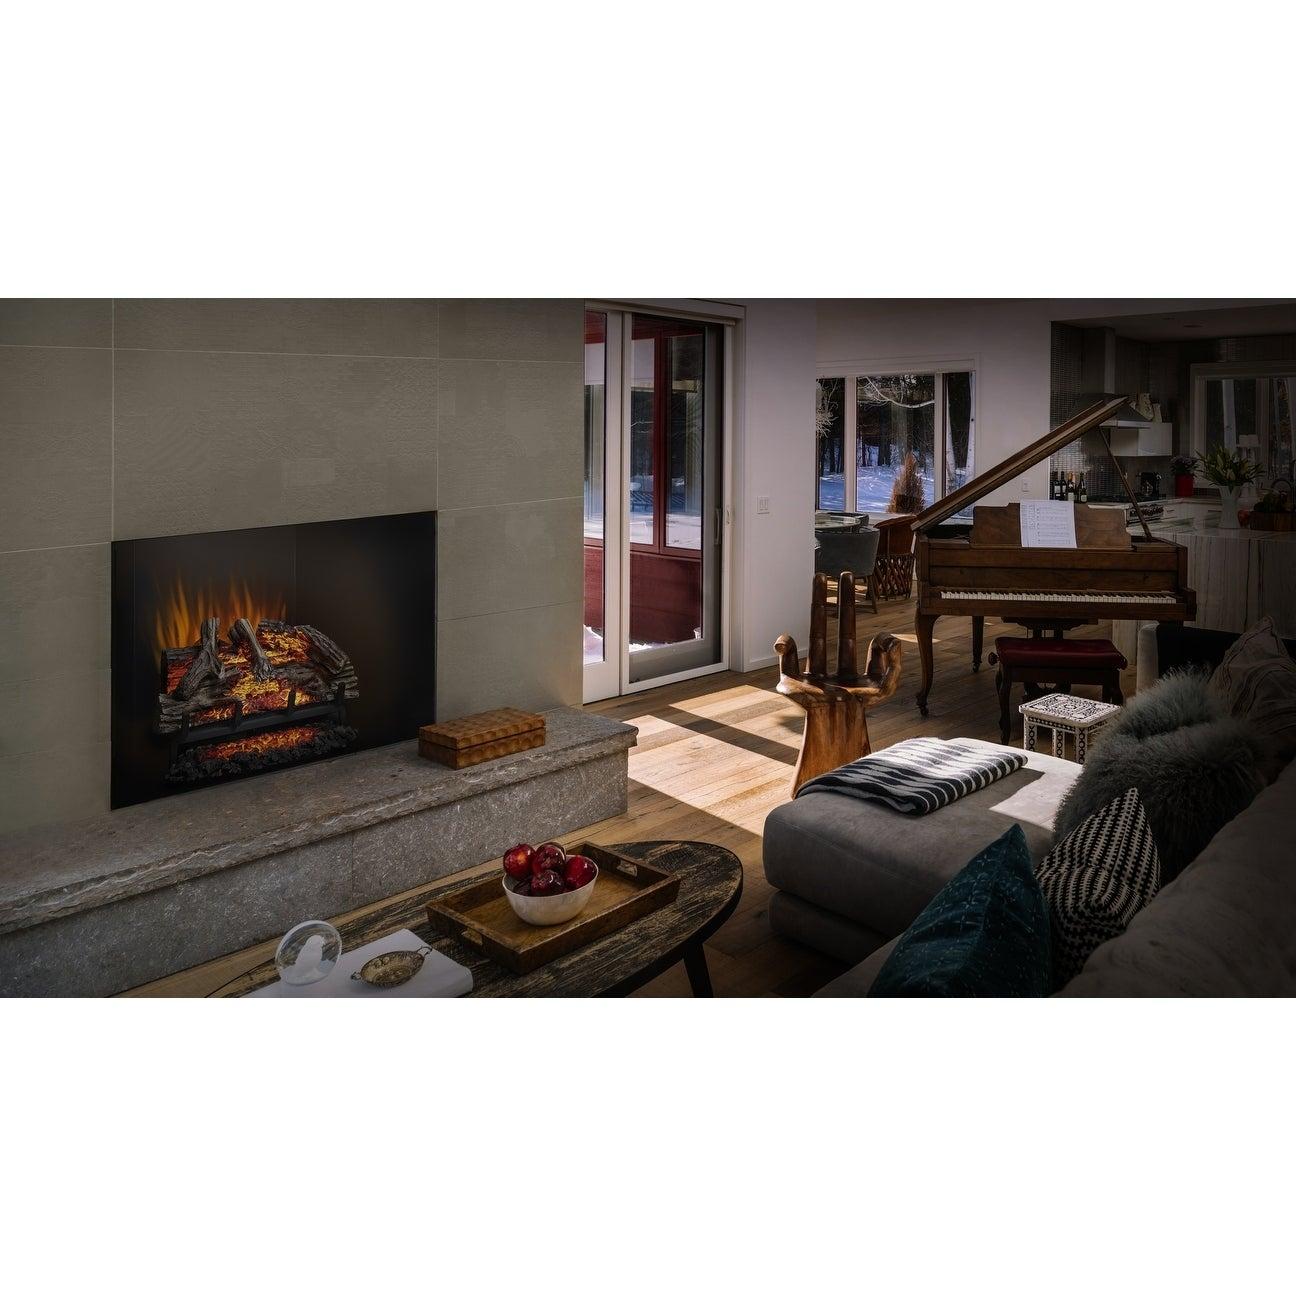 Tremendous Napoleon Woodland 27 Inch Electric Log Set Fireplace Insert With Remote Control Home Interior And Landscaping Eliaenasavecom